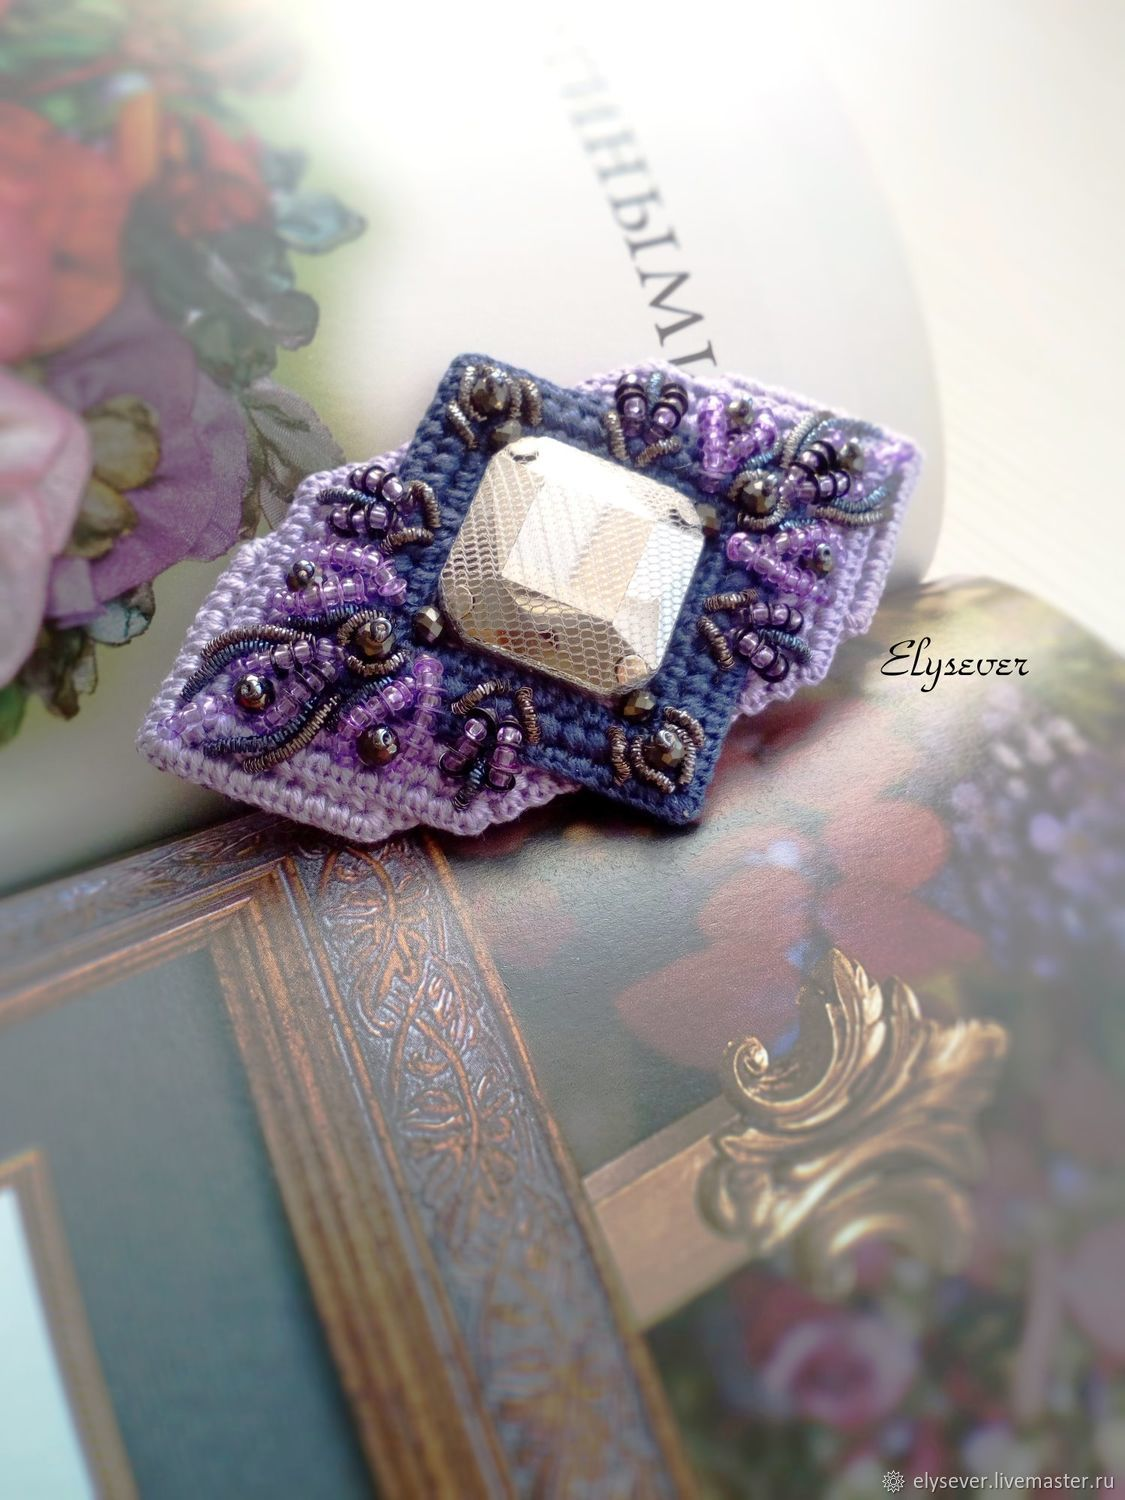 Brooch embroidered Lilac twilight, 9 x 5,5 cm, Brooches, Murmansk,  Фото №1